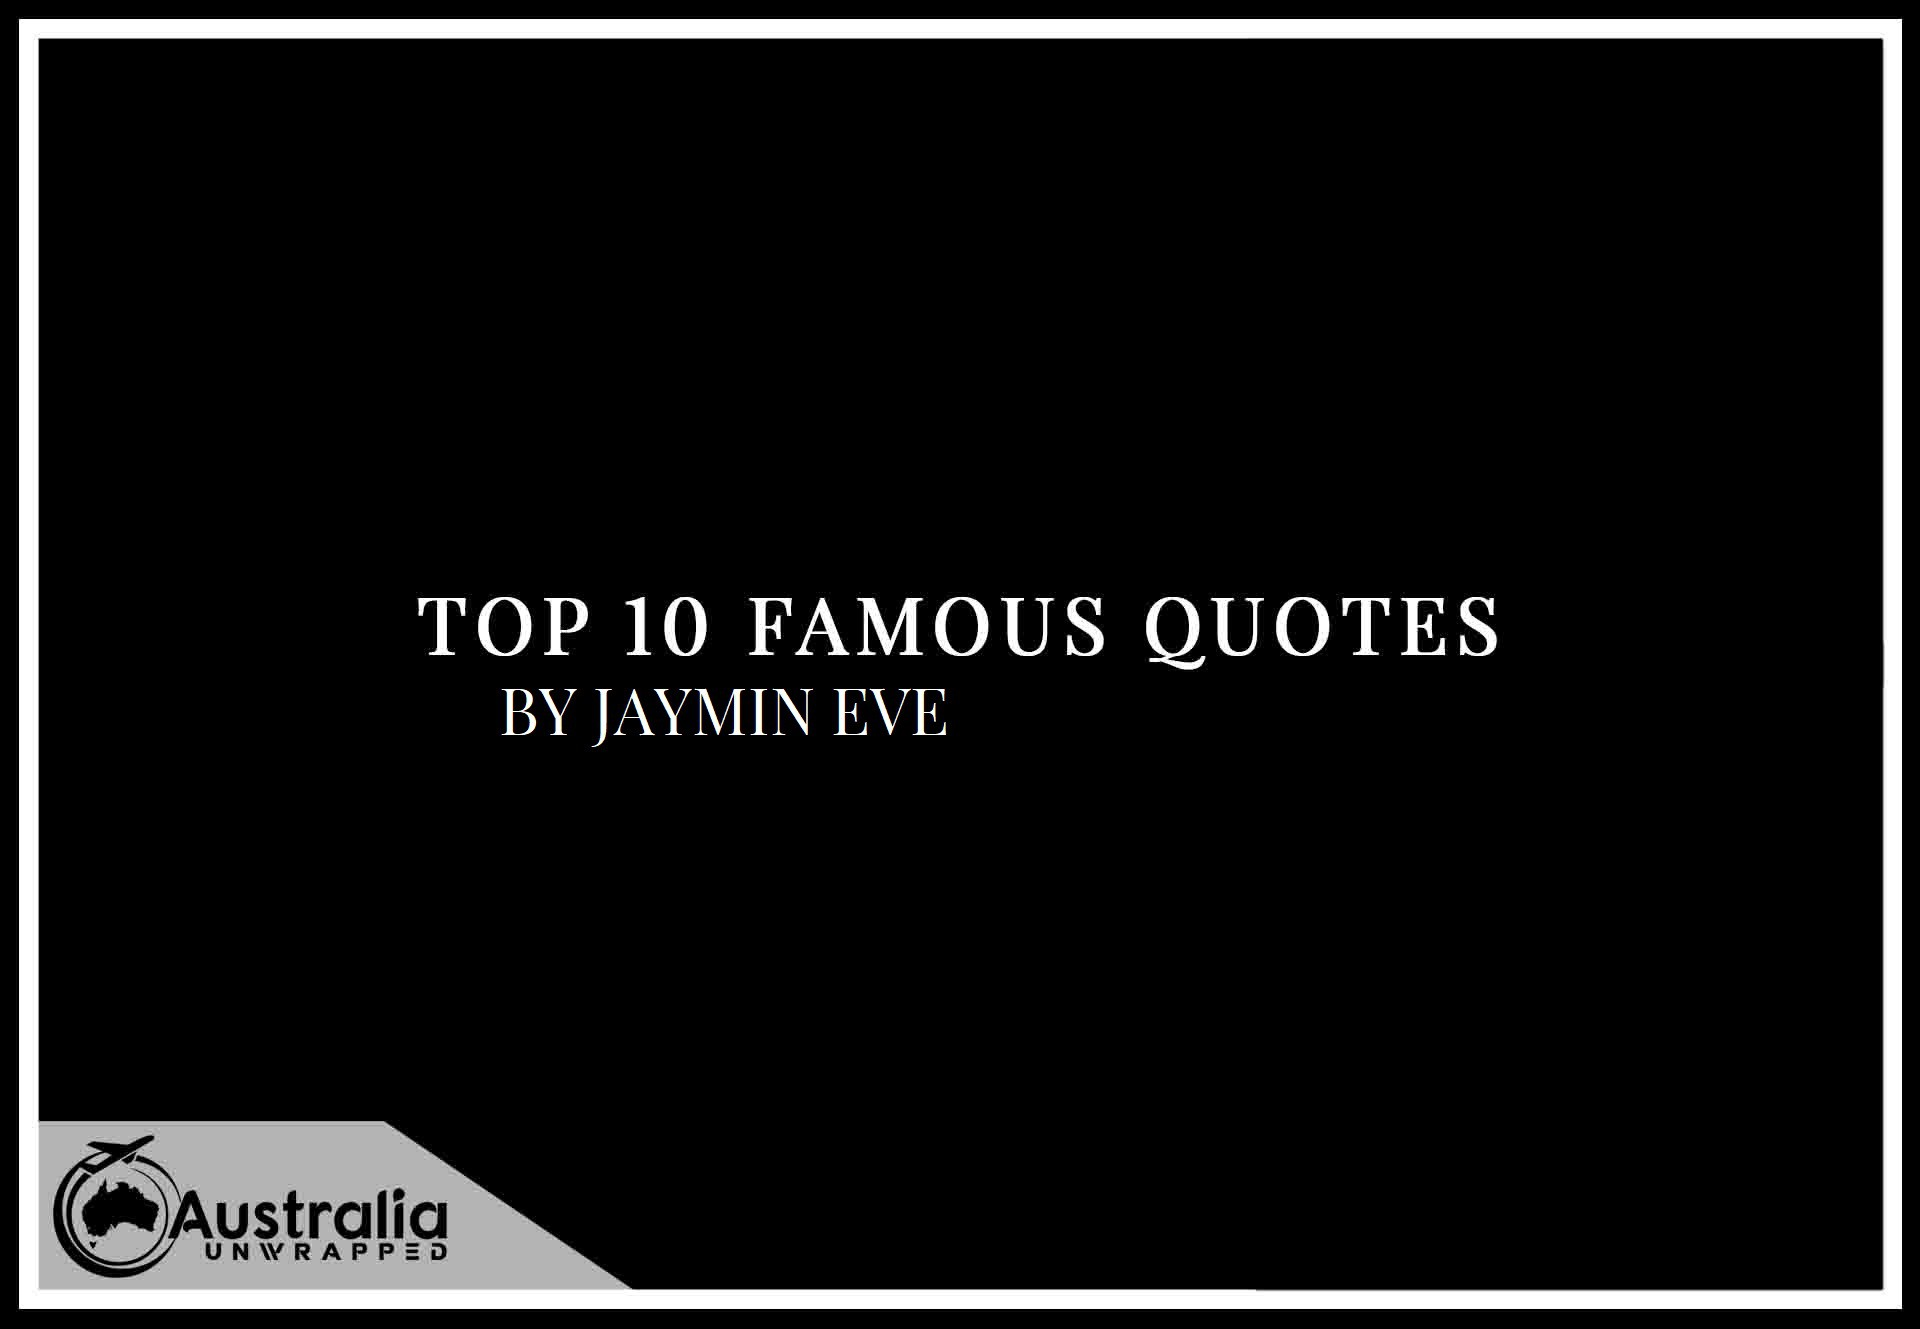 Top 10 Famous Quotes by Author Jaymin Eve